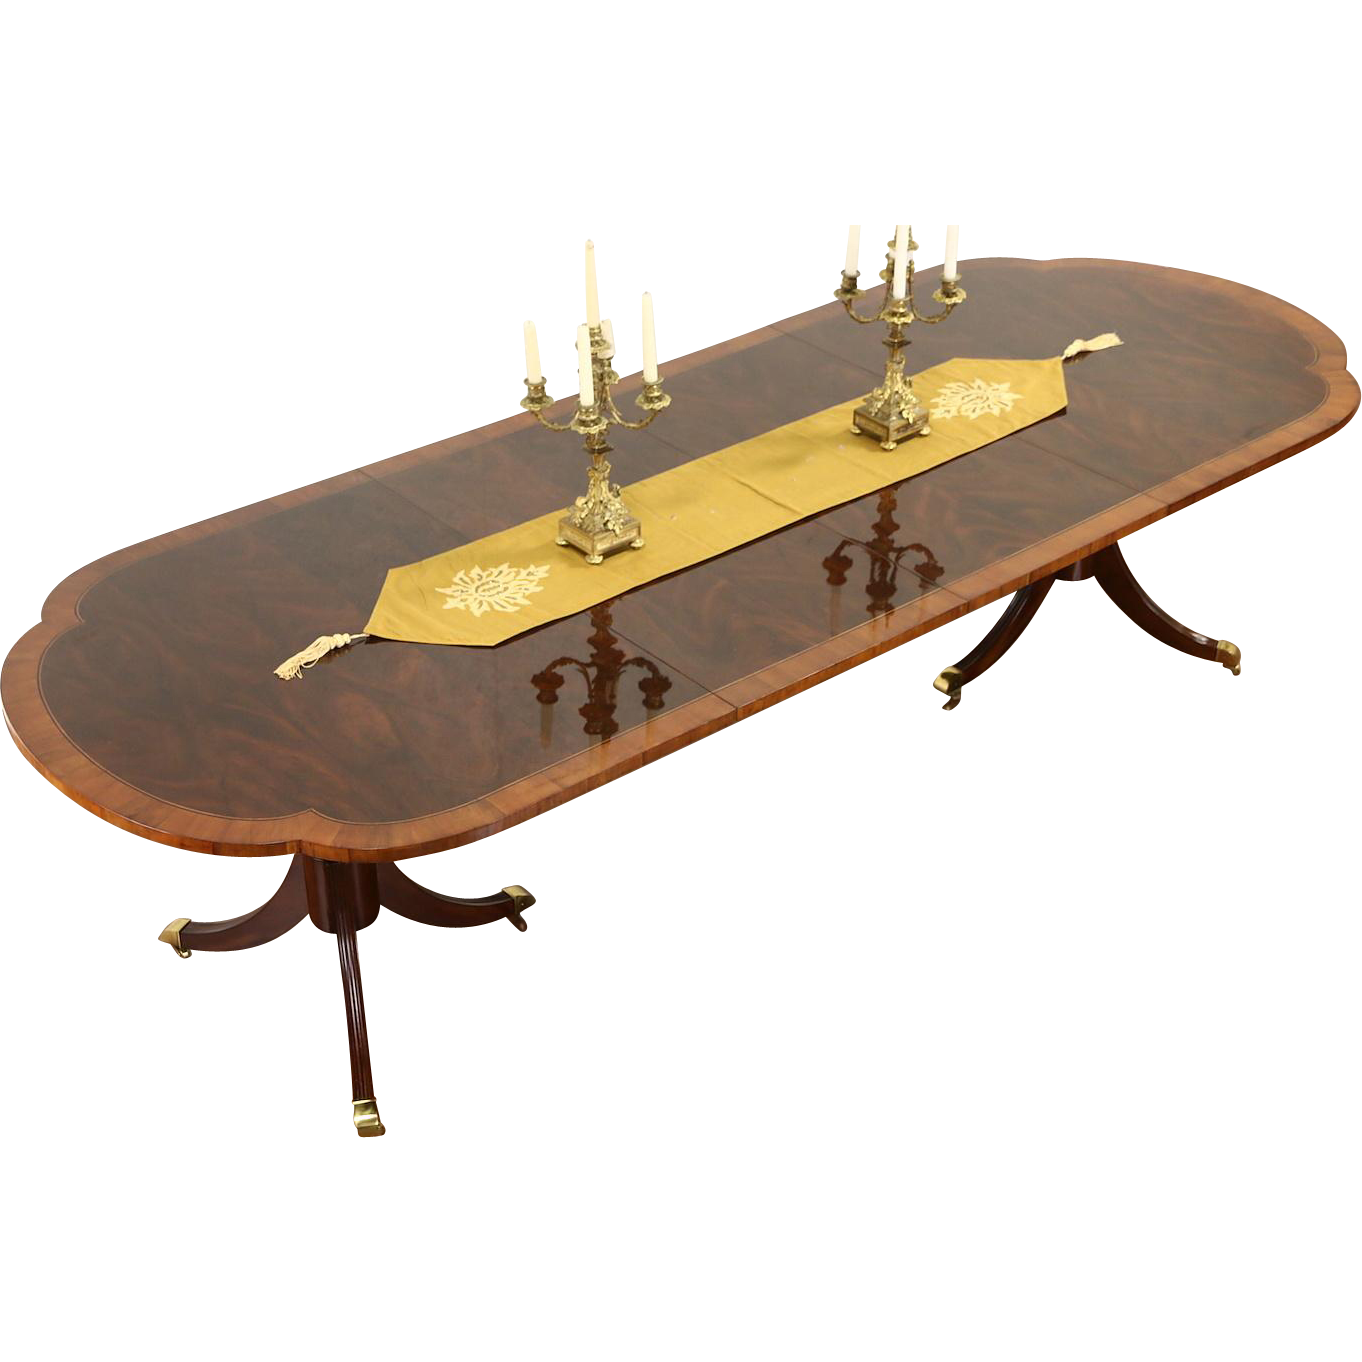 Hekman Signed Copley Square Dining Table, Banded Mahogany, 2 Leaves